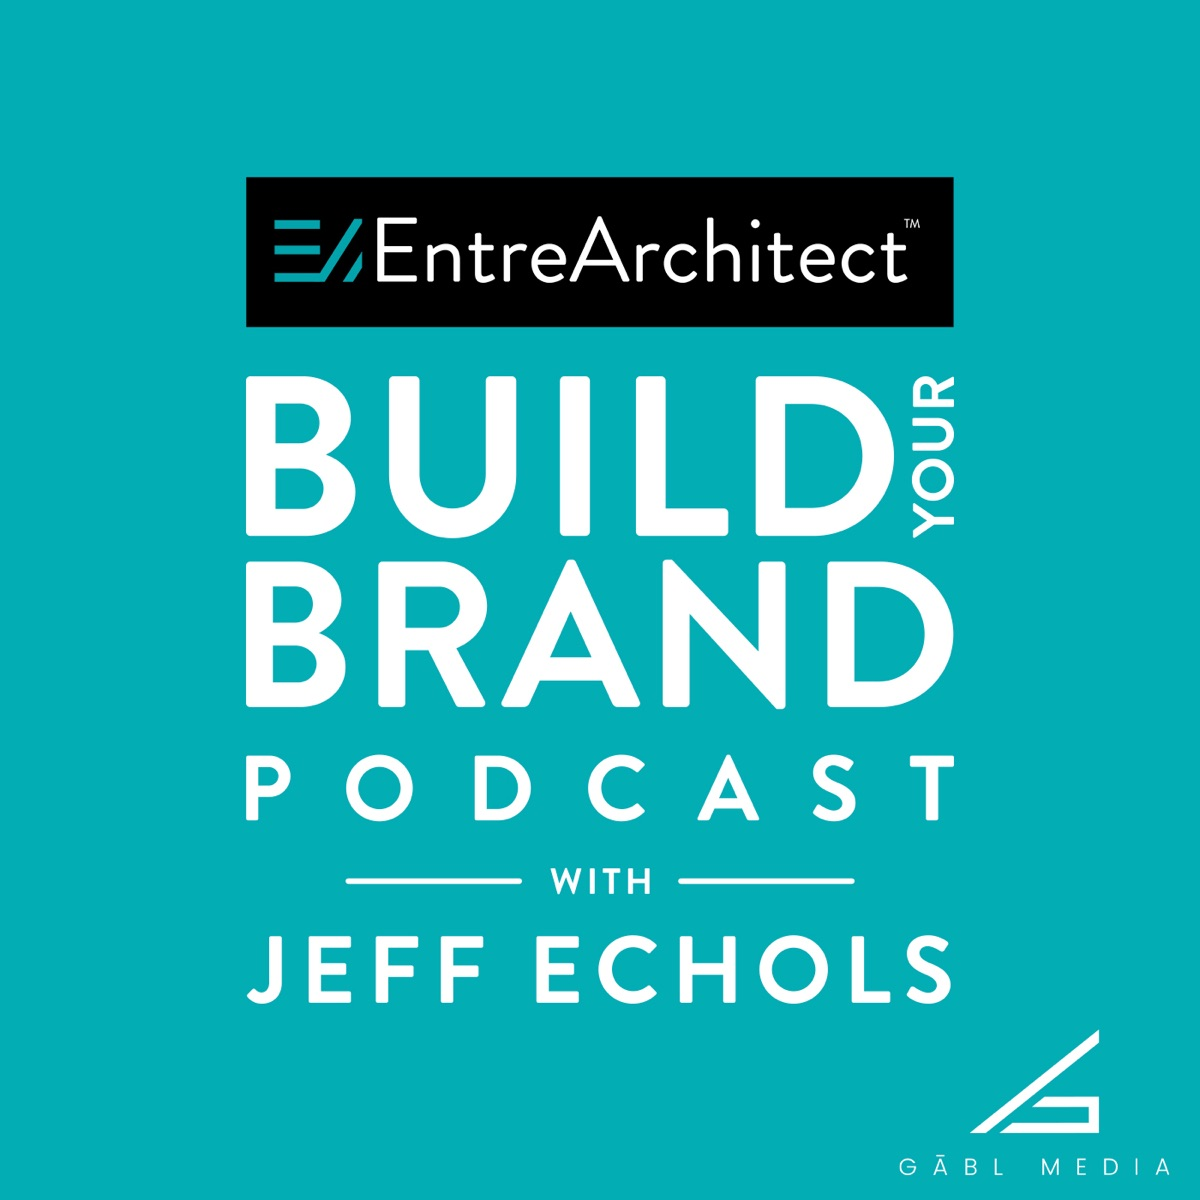 Build Your Brand Podcast with Jeff Echols